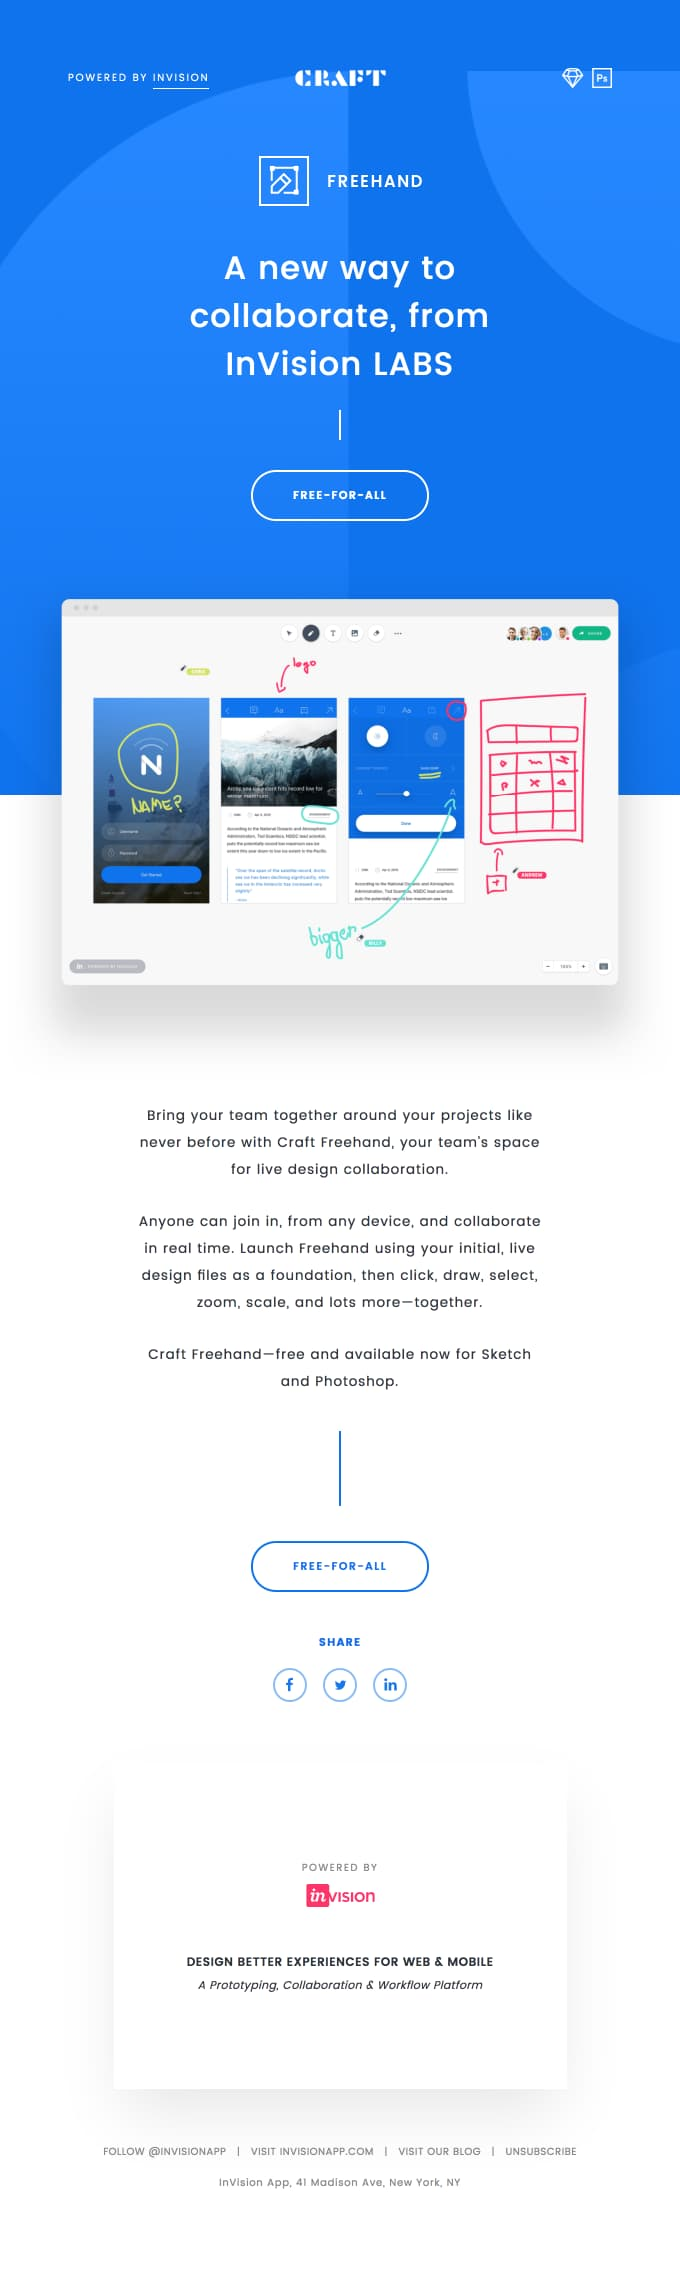 invision product feature launch email example